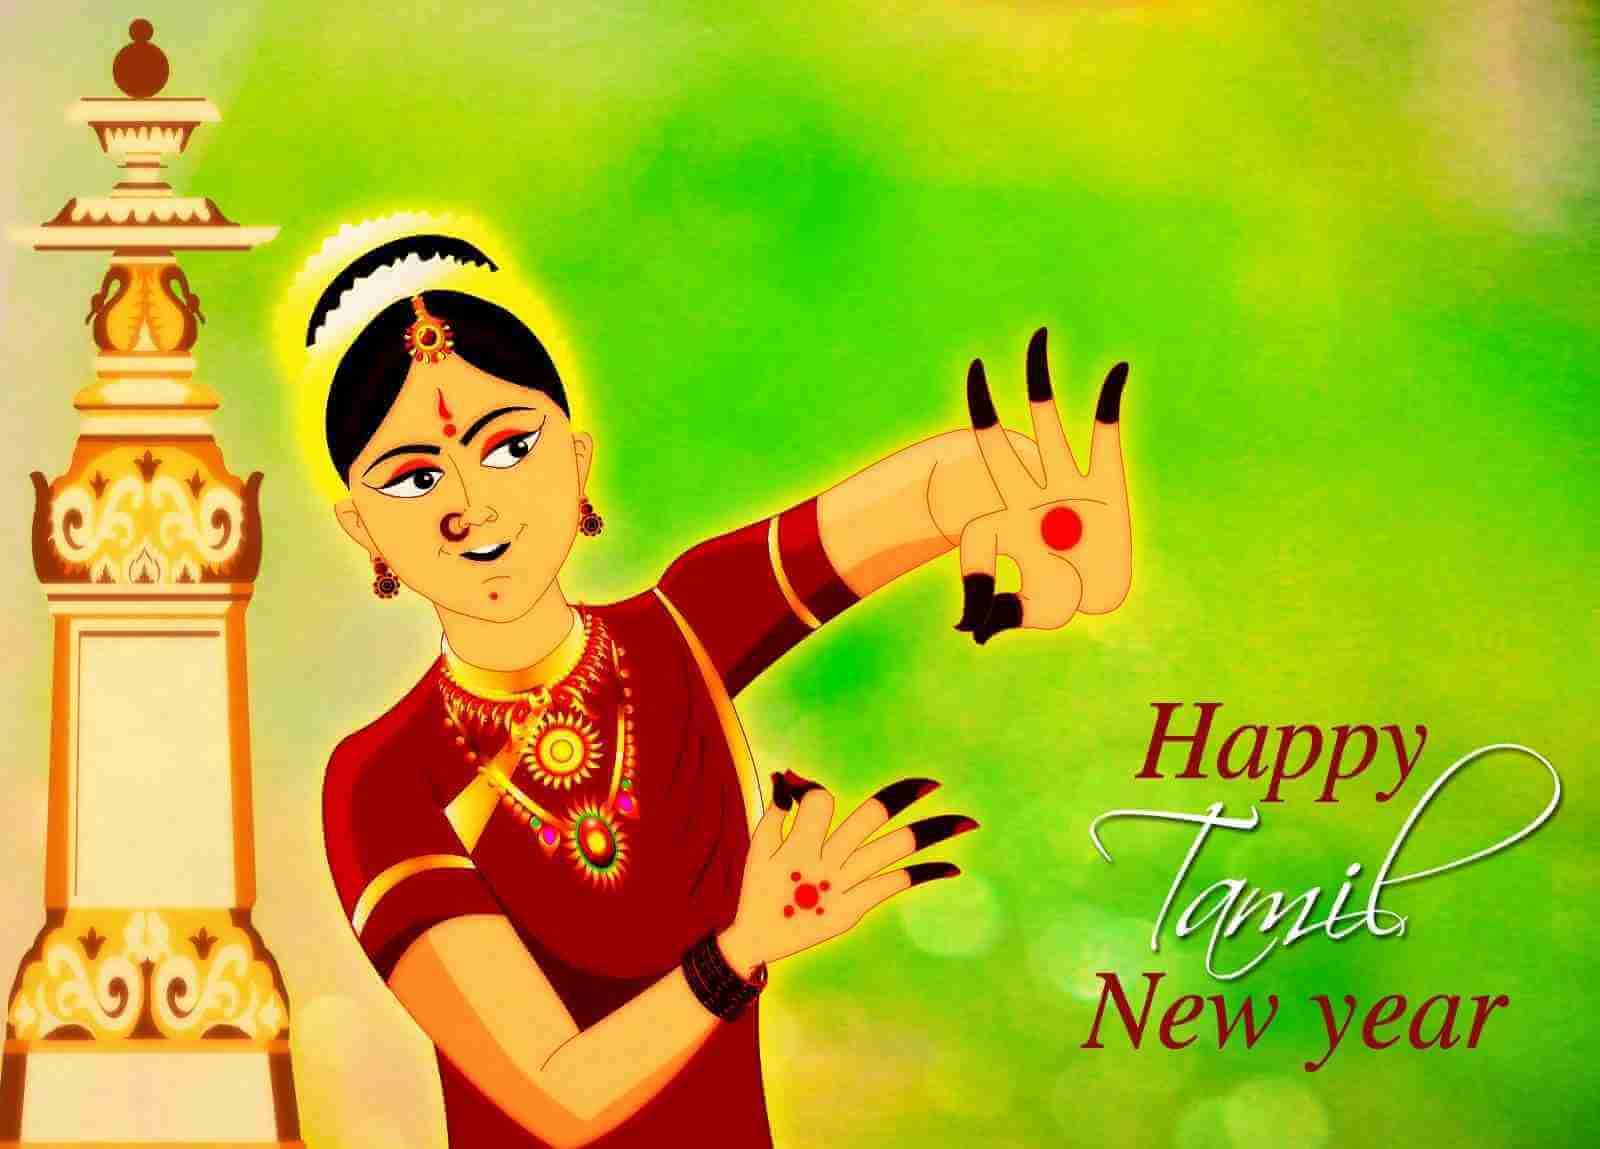 happy tamil new year wishes greetings lady girl dance hd wallpaper